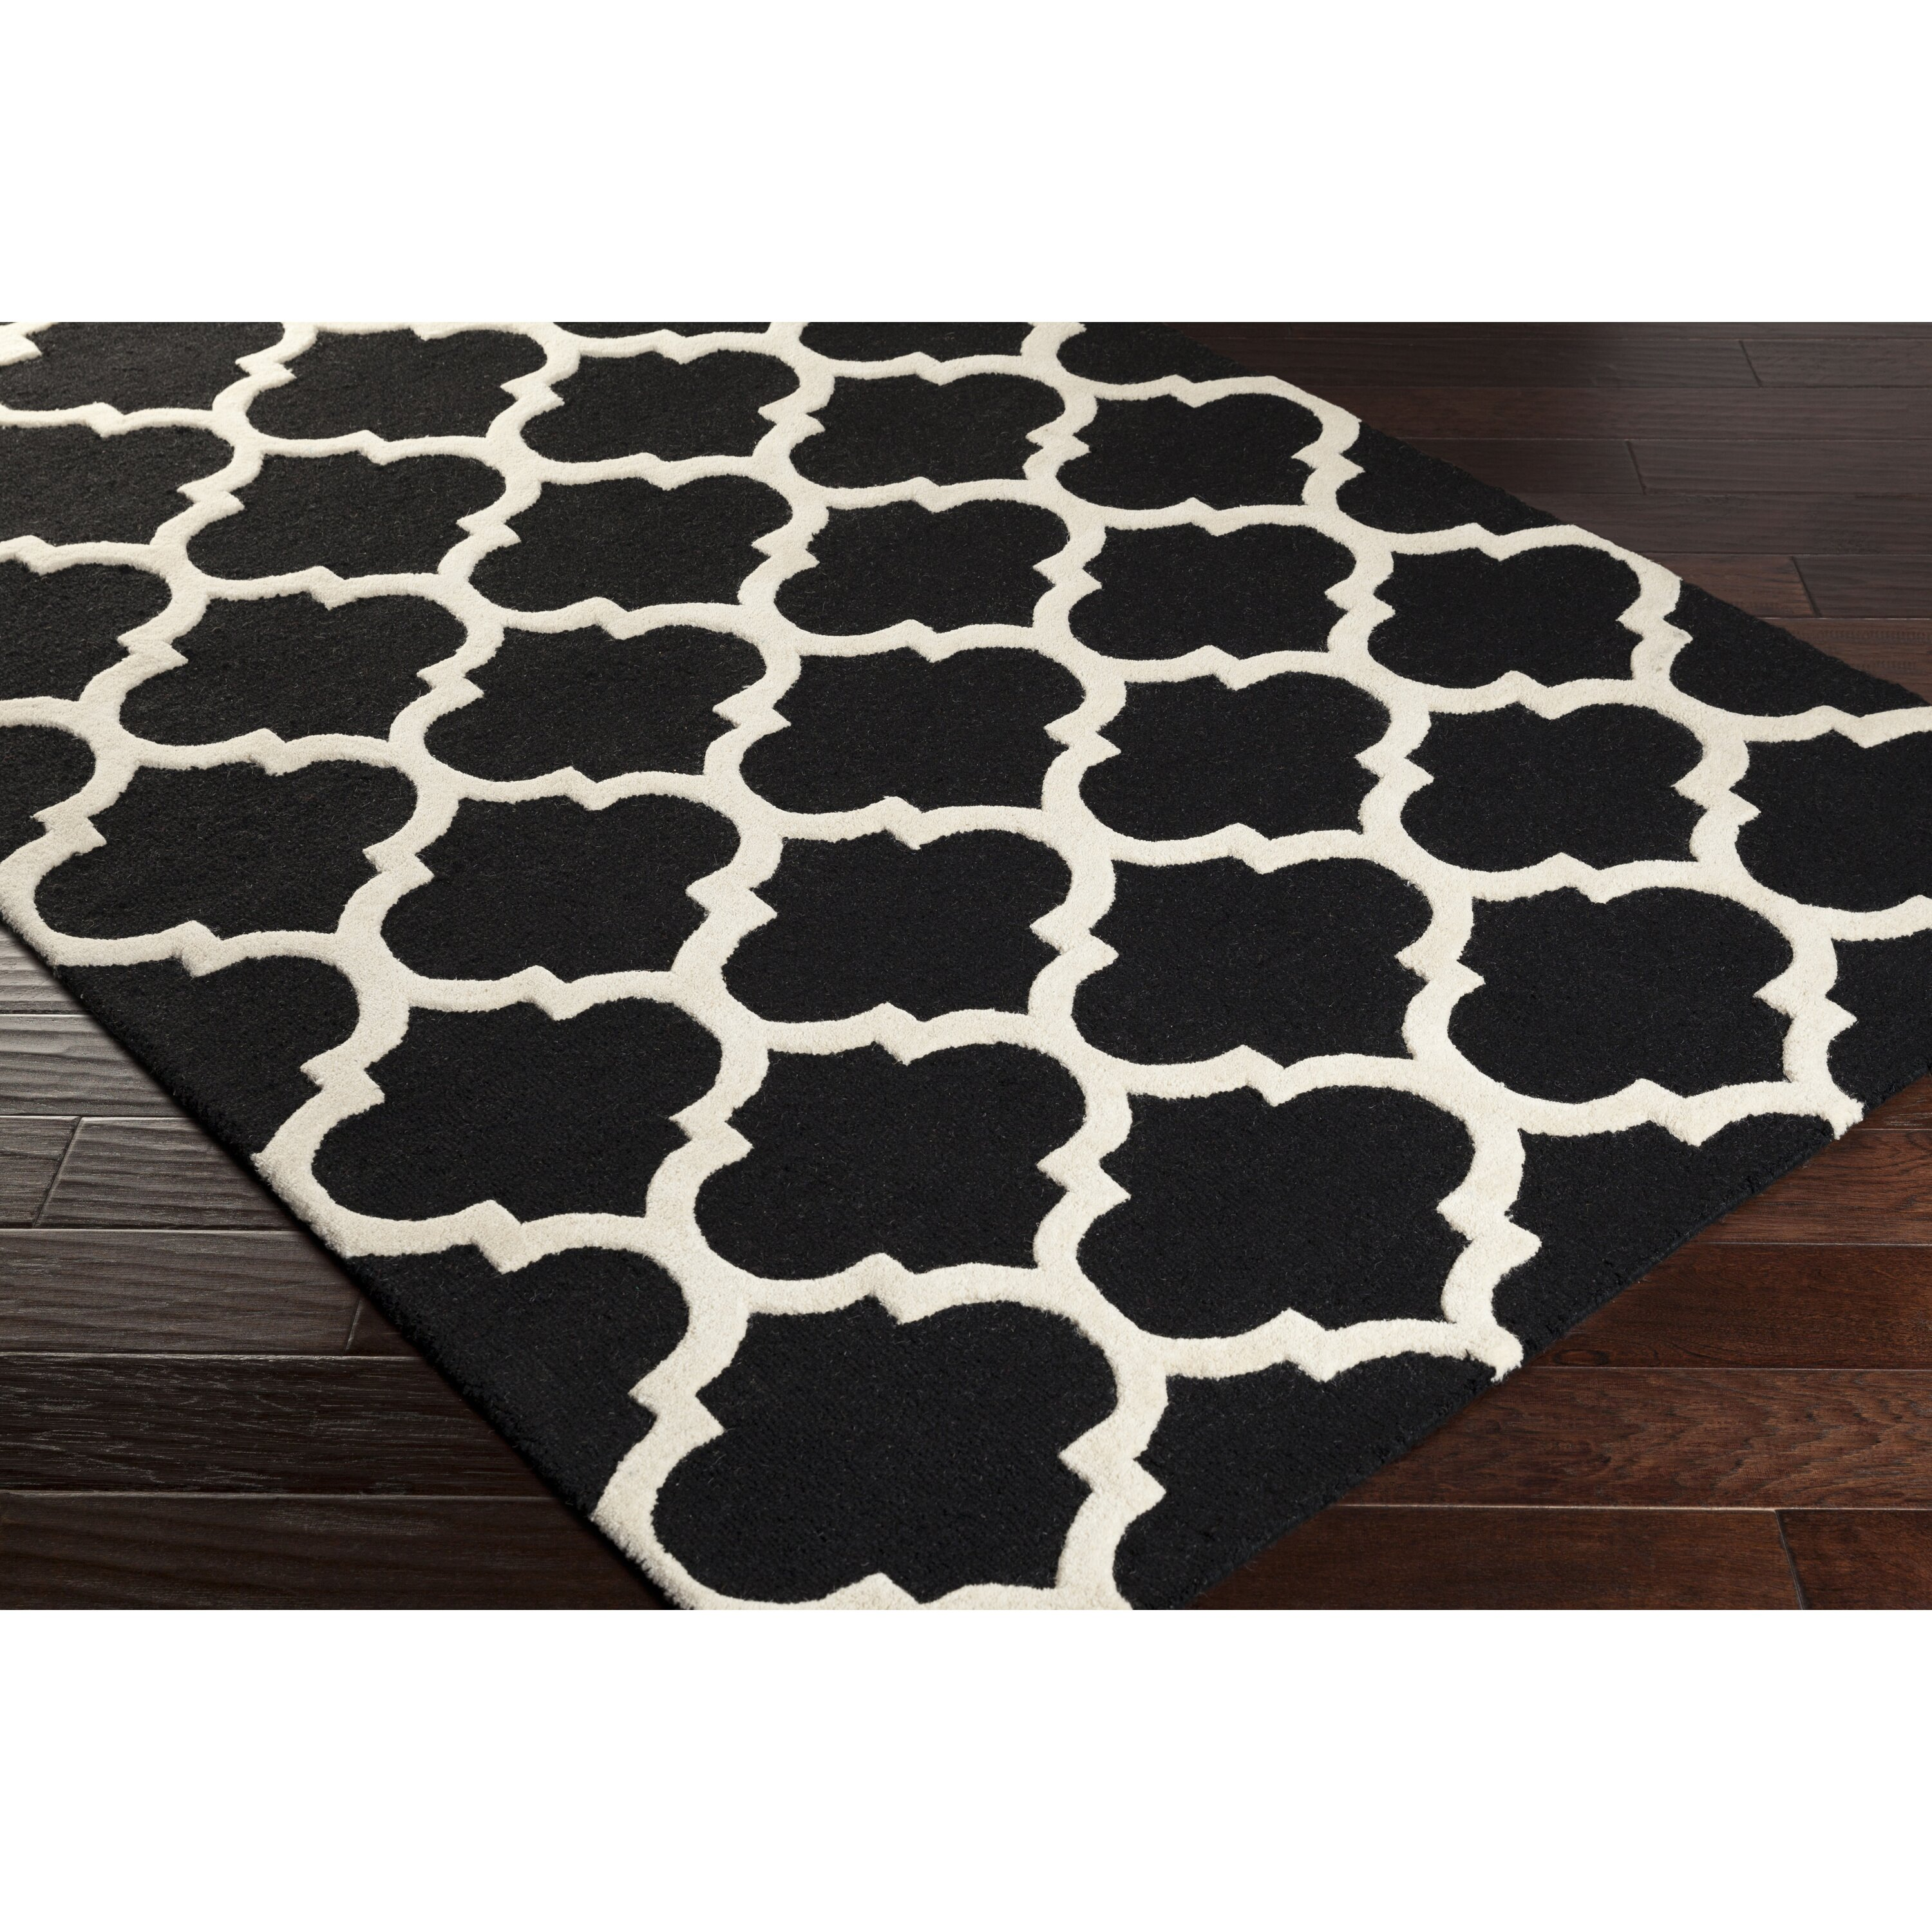 Black And White Geometric Kitchen Rug: Artistic Weavers Pollack True Black And Ivory White